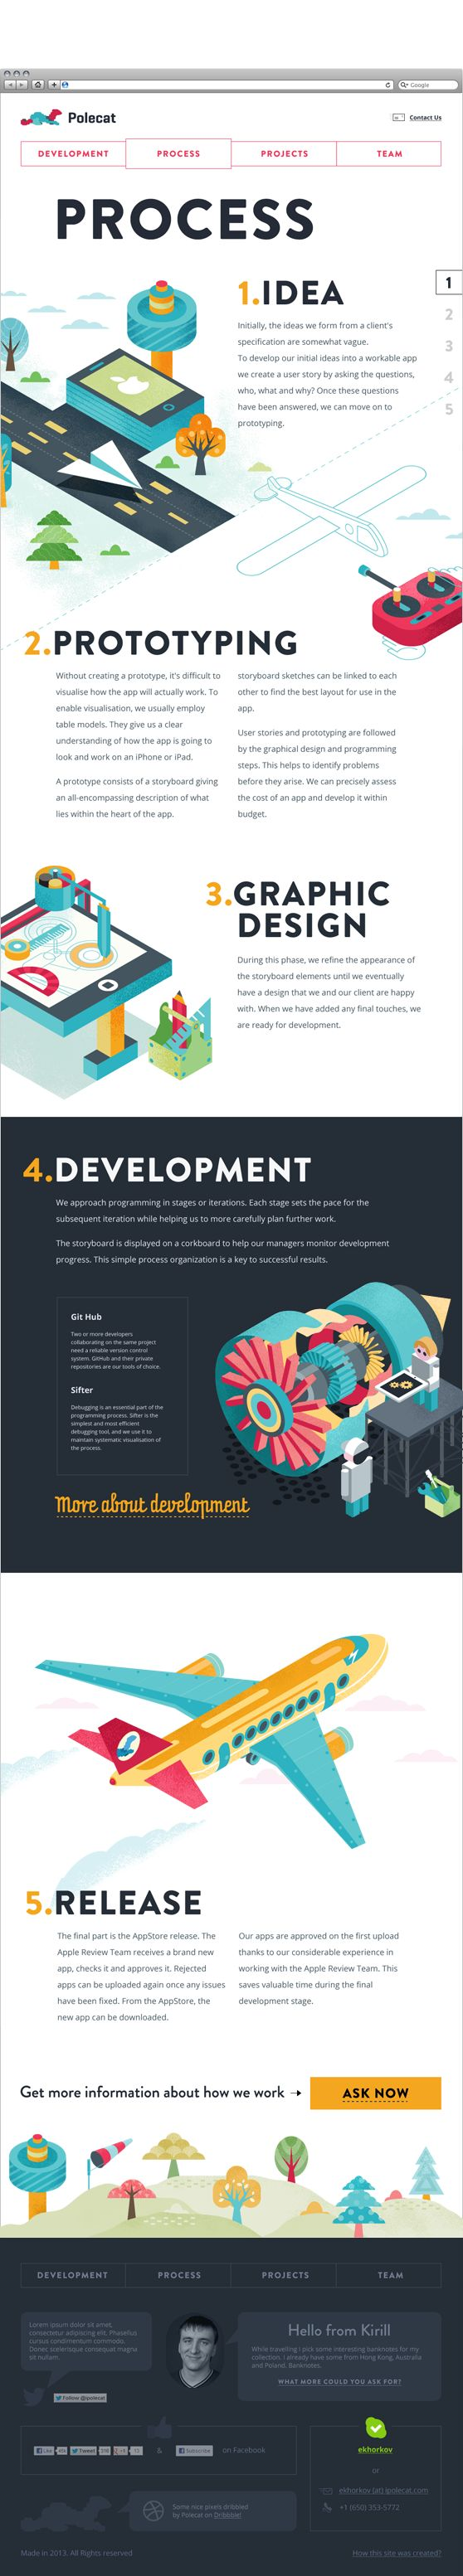 Great infographic on the design process from idea to development.